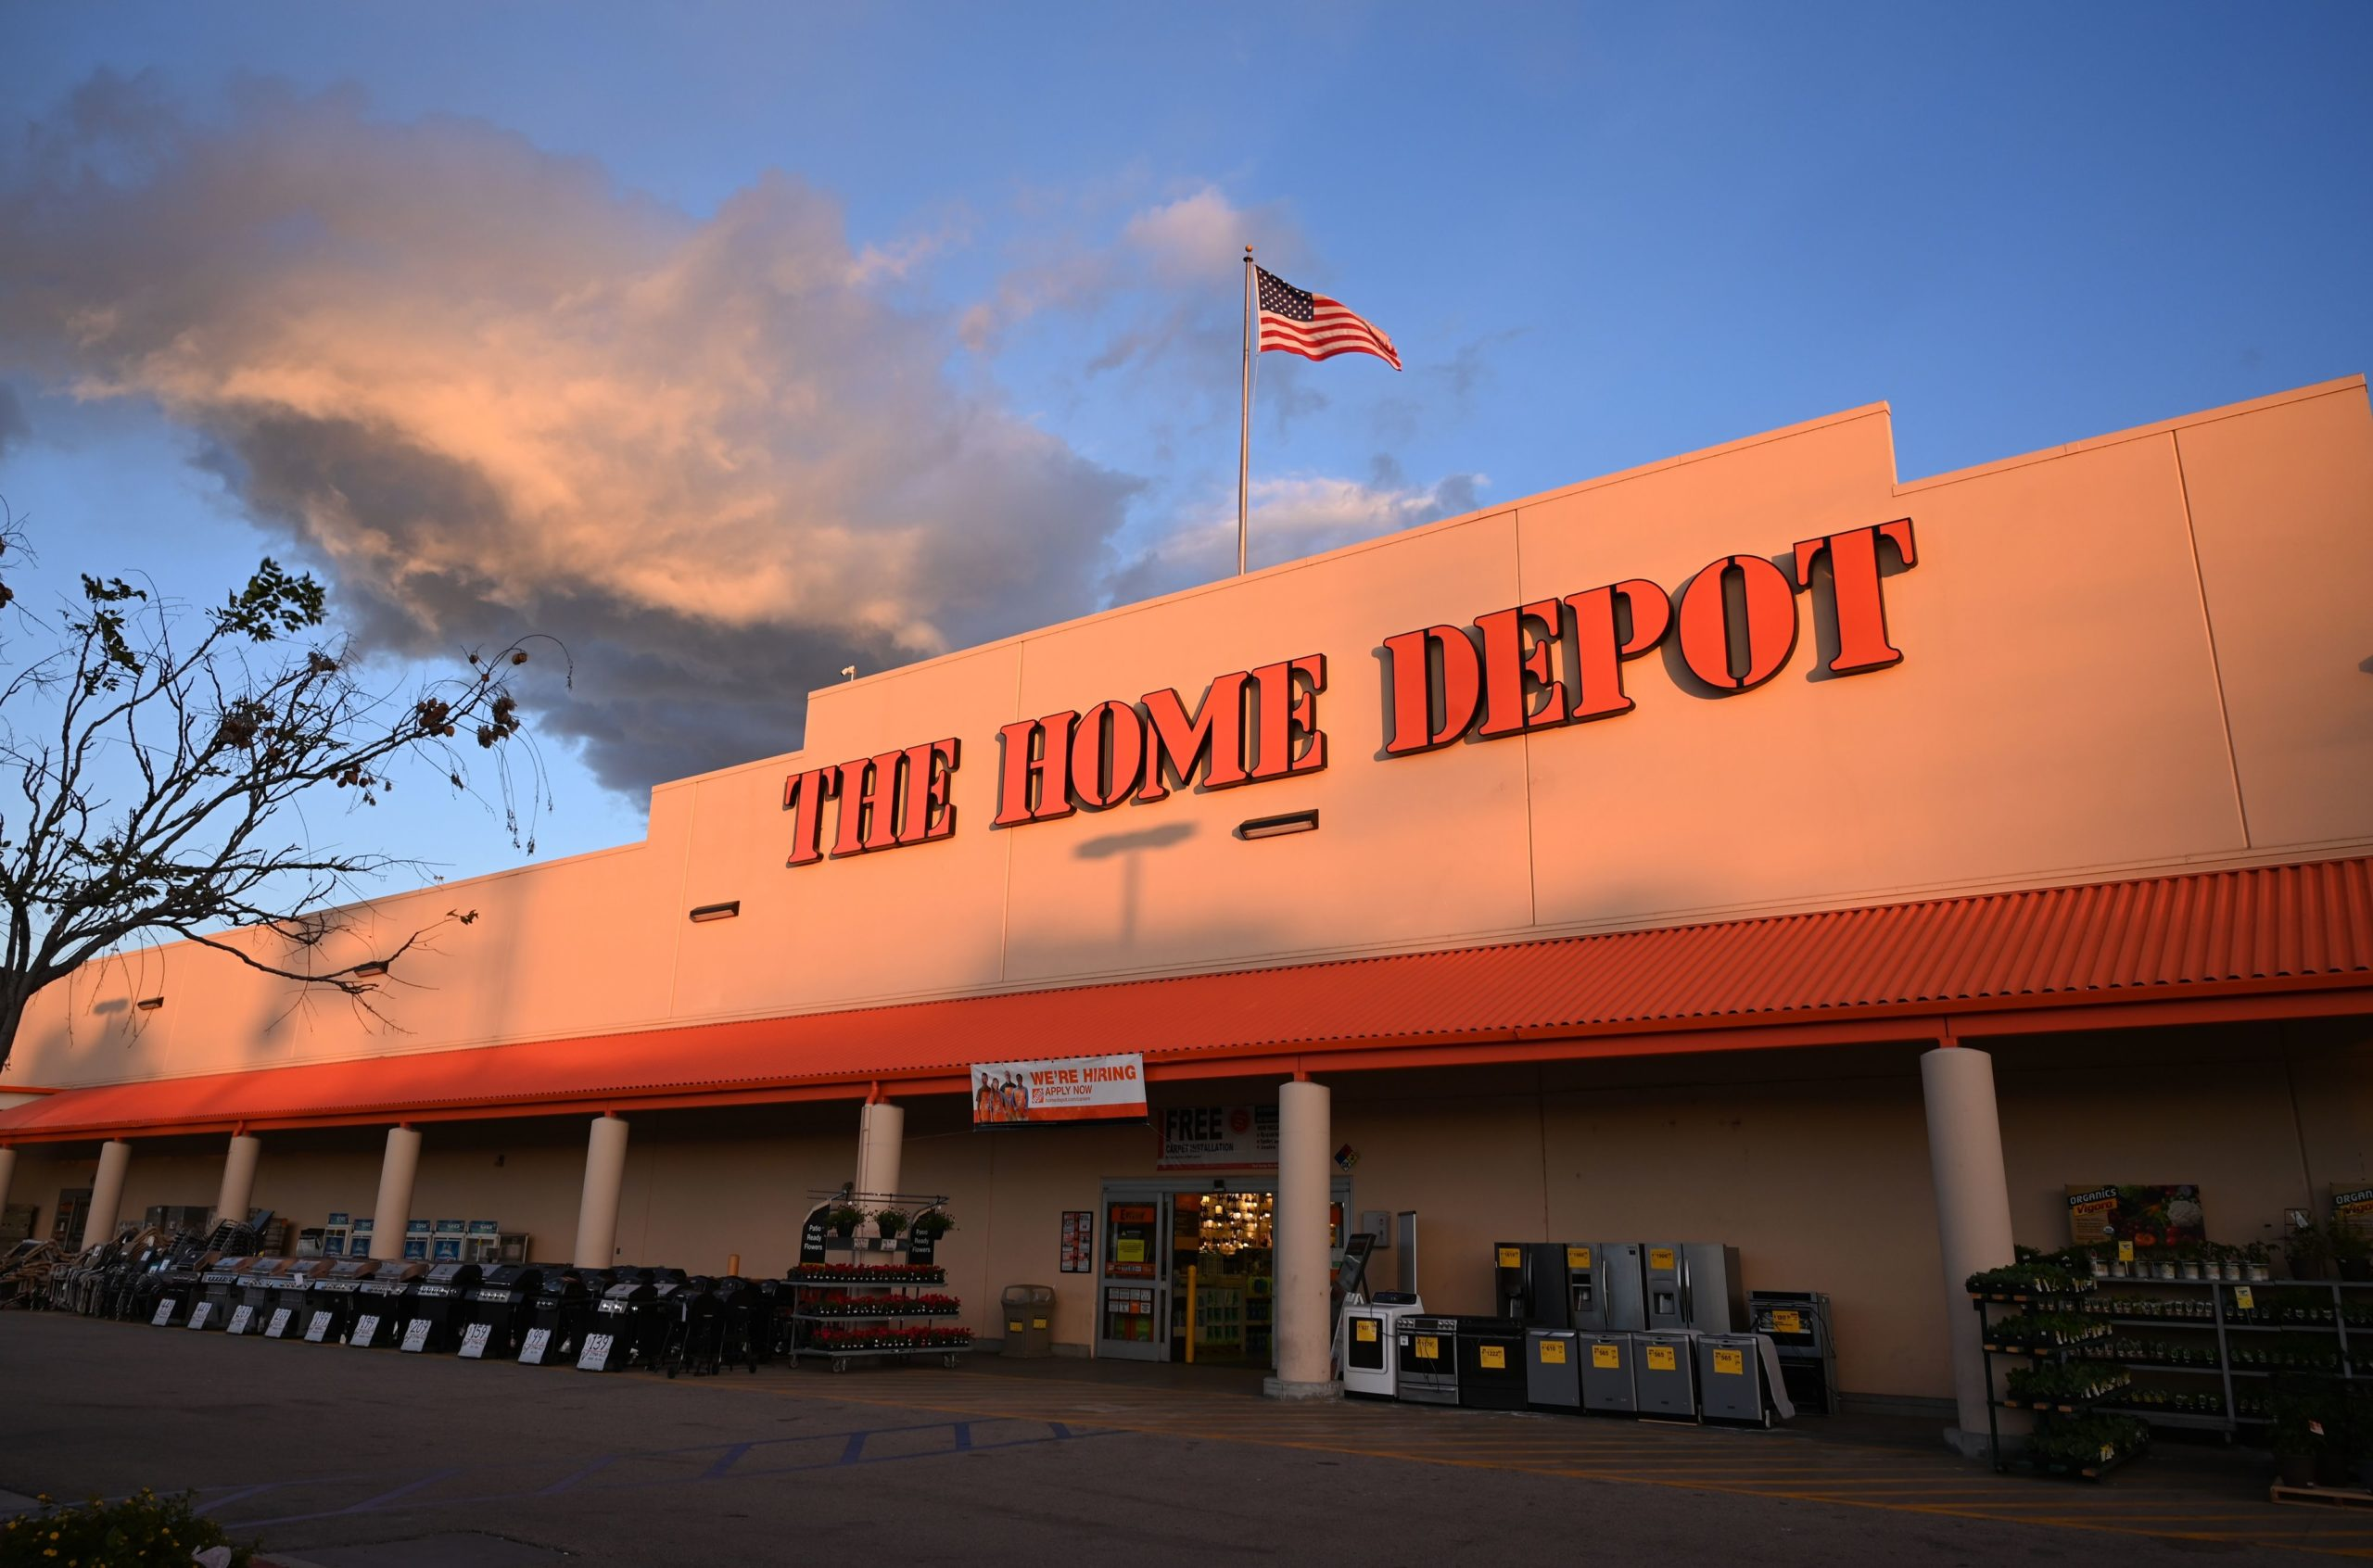 A Home Depot store in Burbank, California is seen on February 18, 2019. - The home improvement retail giant offered a weaker than expected outlook for fiscal 2019 when it reported its fourth quarter earnings February 26, 2019 leading stocks to weaken in early trading.Dow member Home Depot shed 3.2 percent as it projected slightly lower 2019 sales growth compared with last year. (Photo by Robyn Beck / AFP) (Photo credit should read ROBYN BECK/AFP via Getty Images)